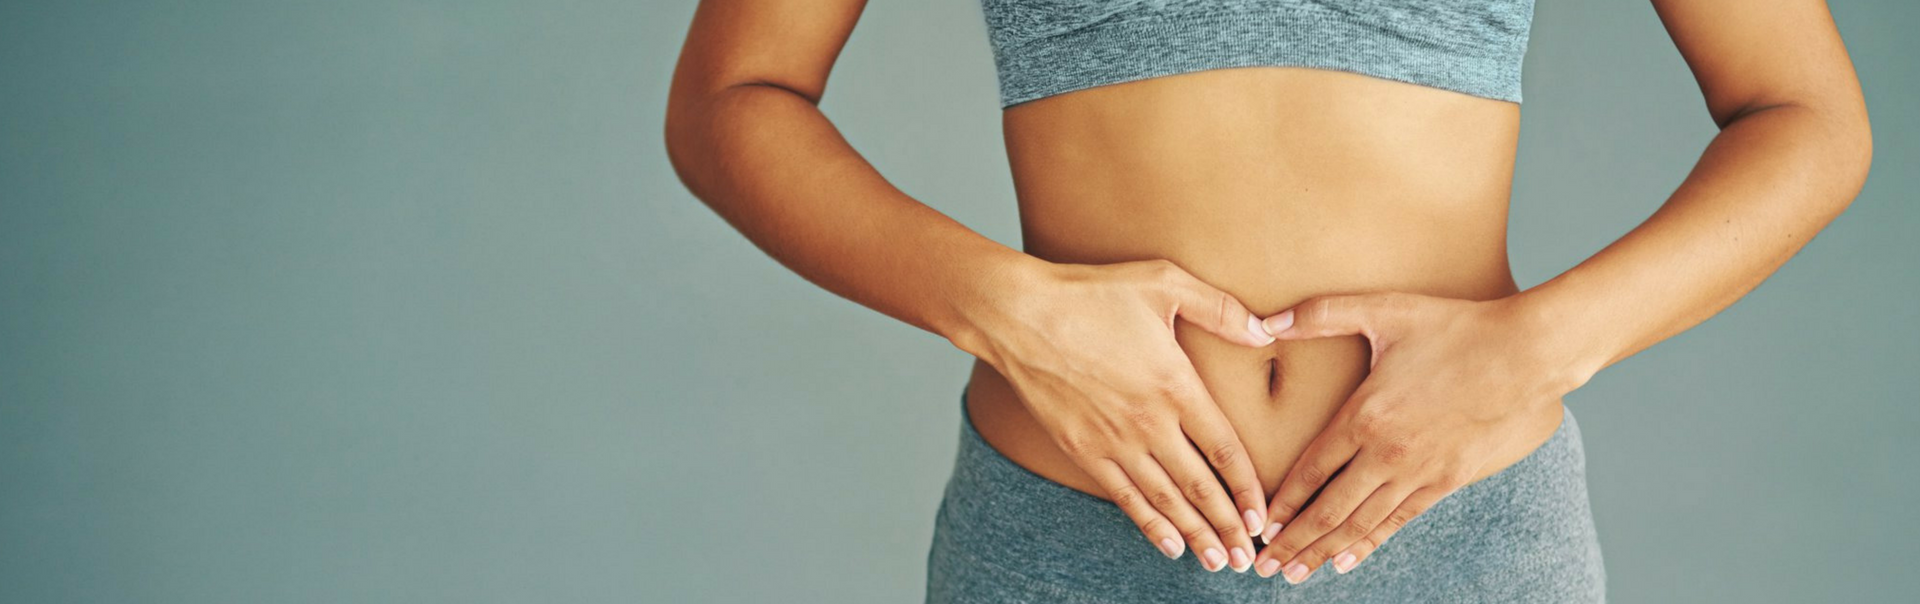 How To Ease IBS